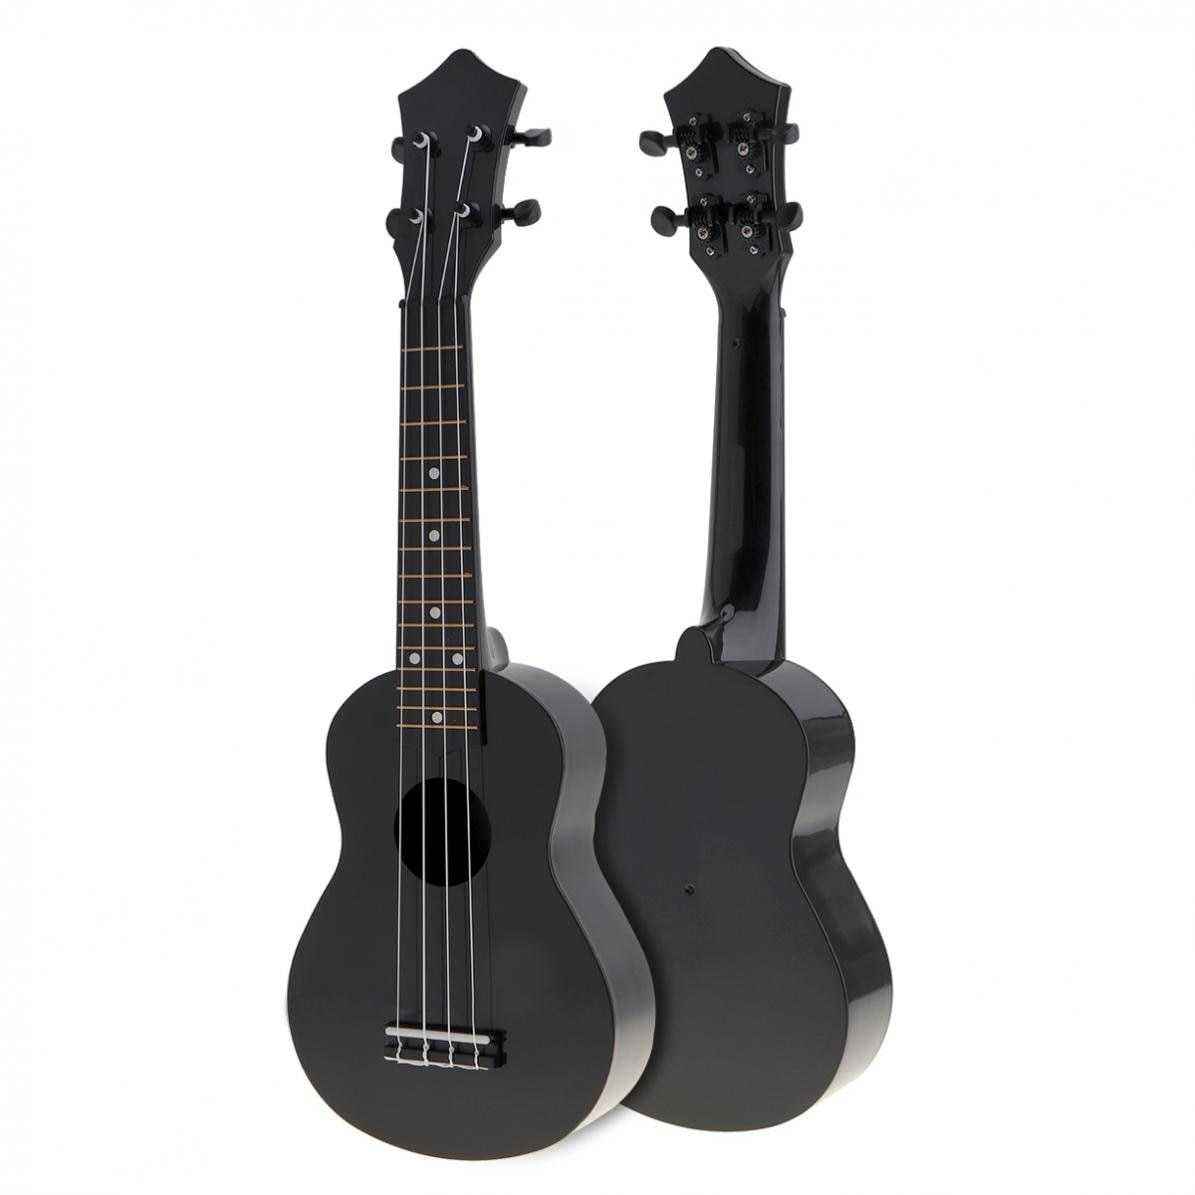 4 Strings 21 Inch Soprano Acoustic Ukulele Colorful Uke Hawaii Guitar Guitarra Musica Instrument for Kids and Music Beginner enlarge